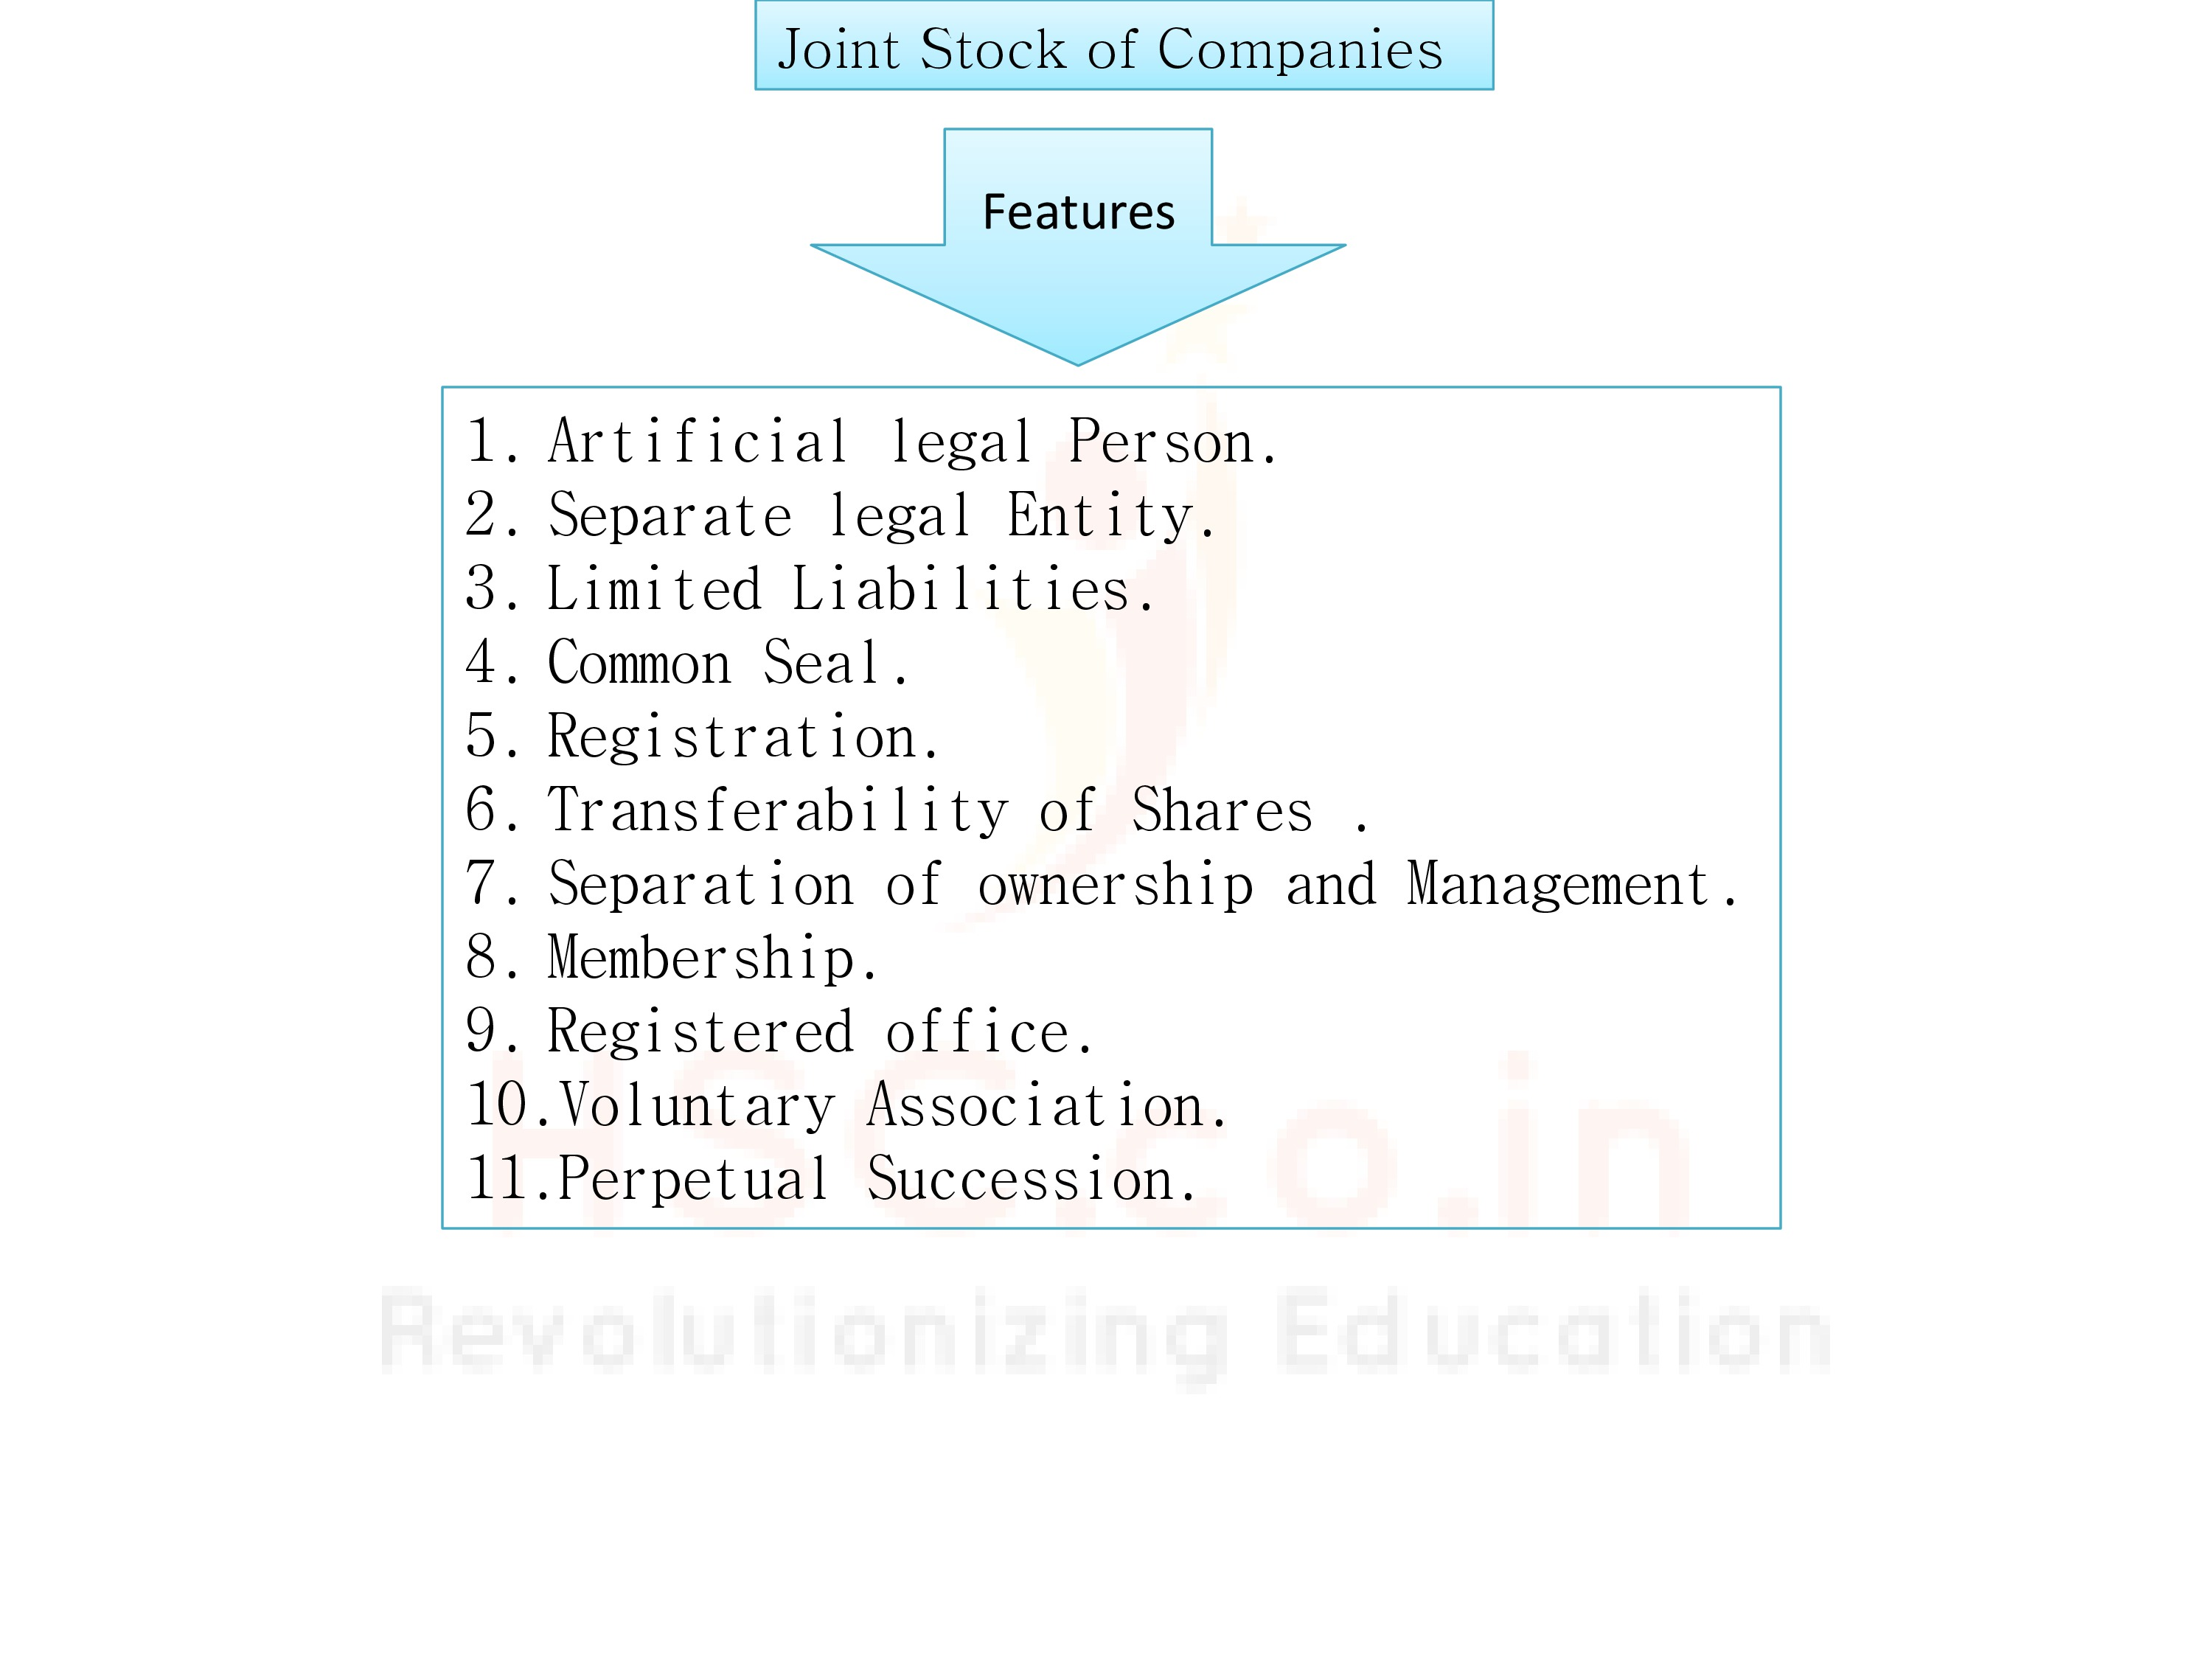 Features of Joint stock of companies